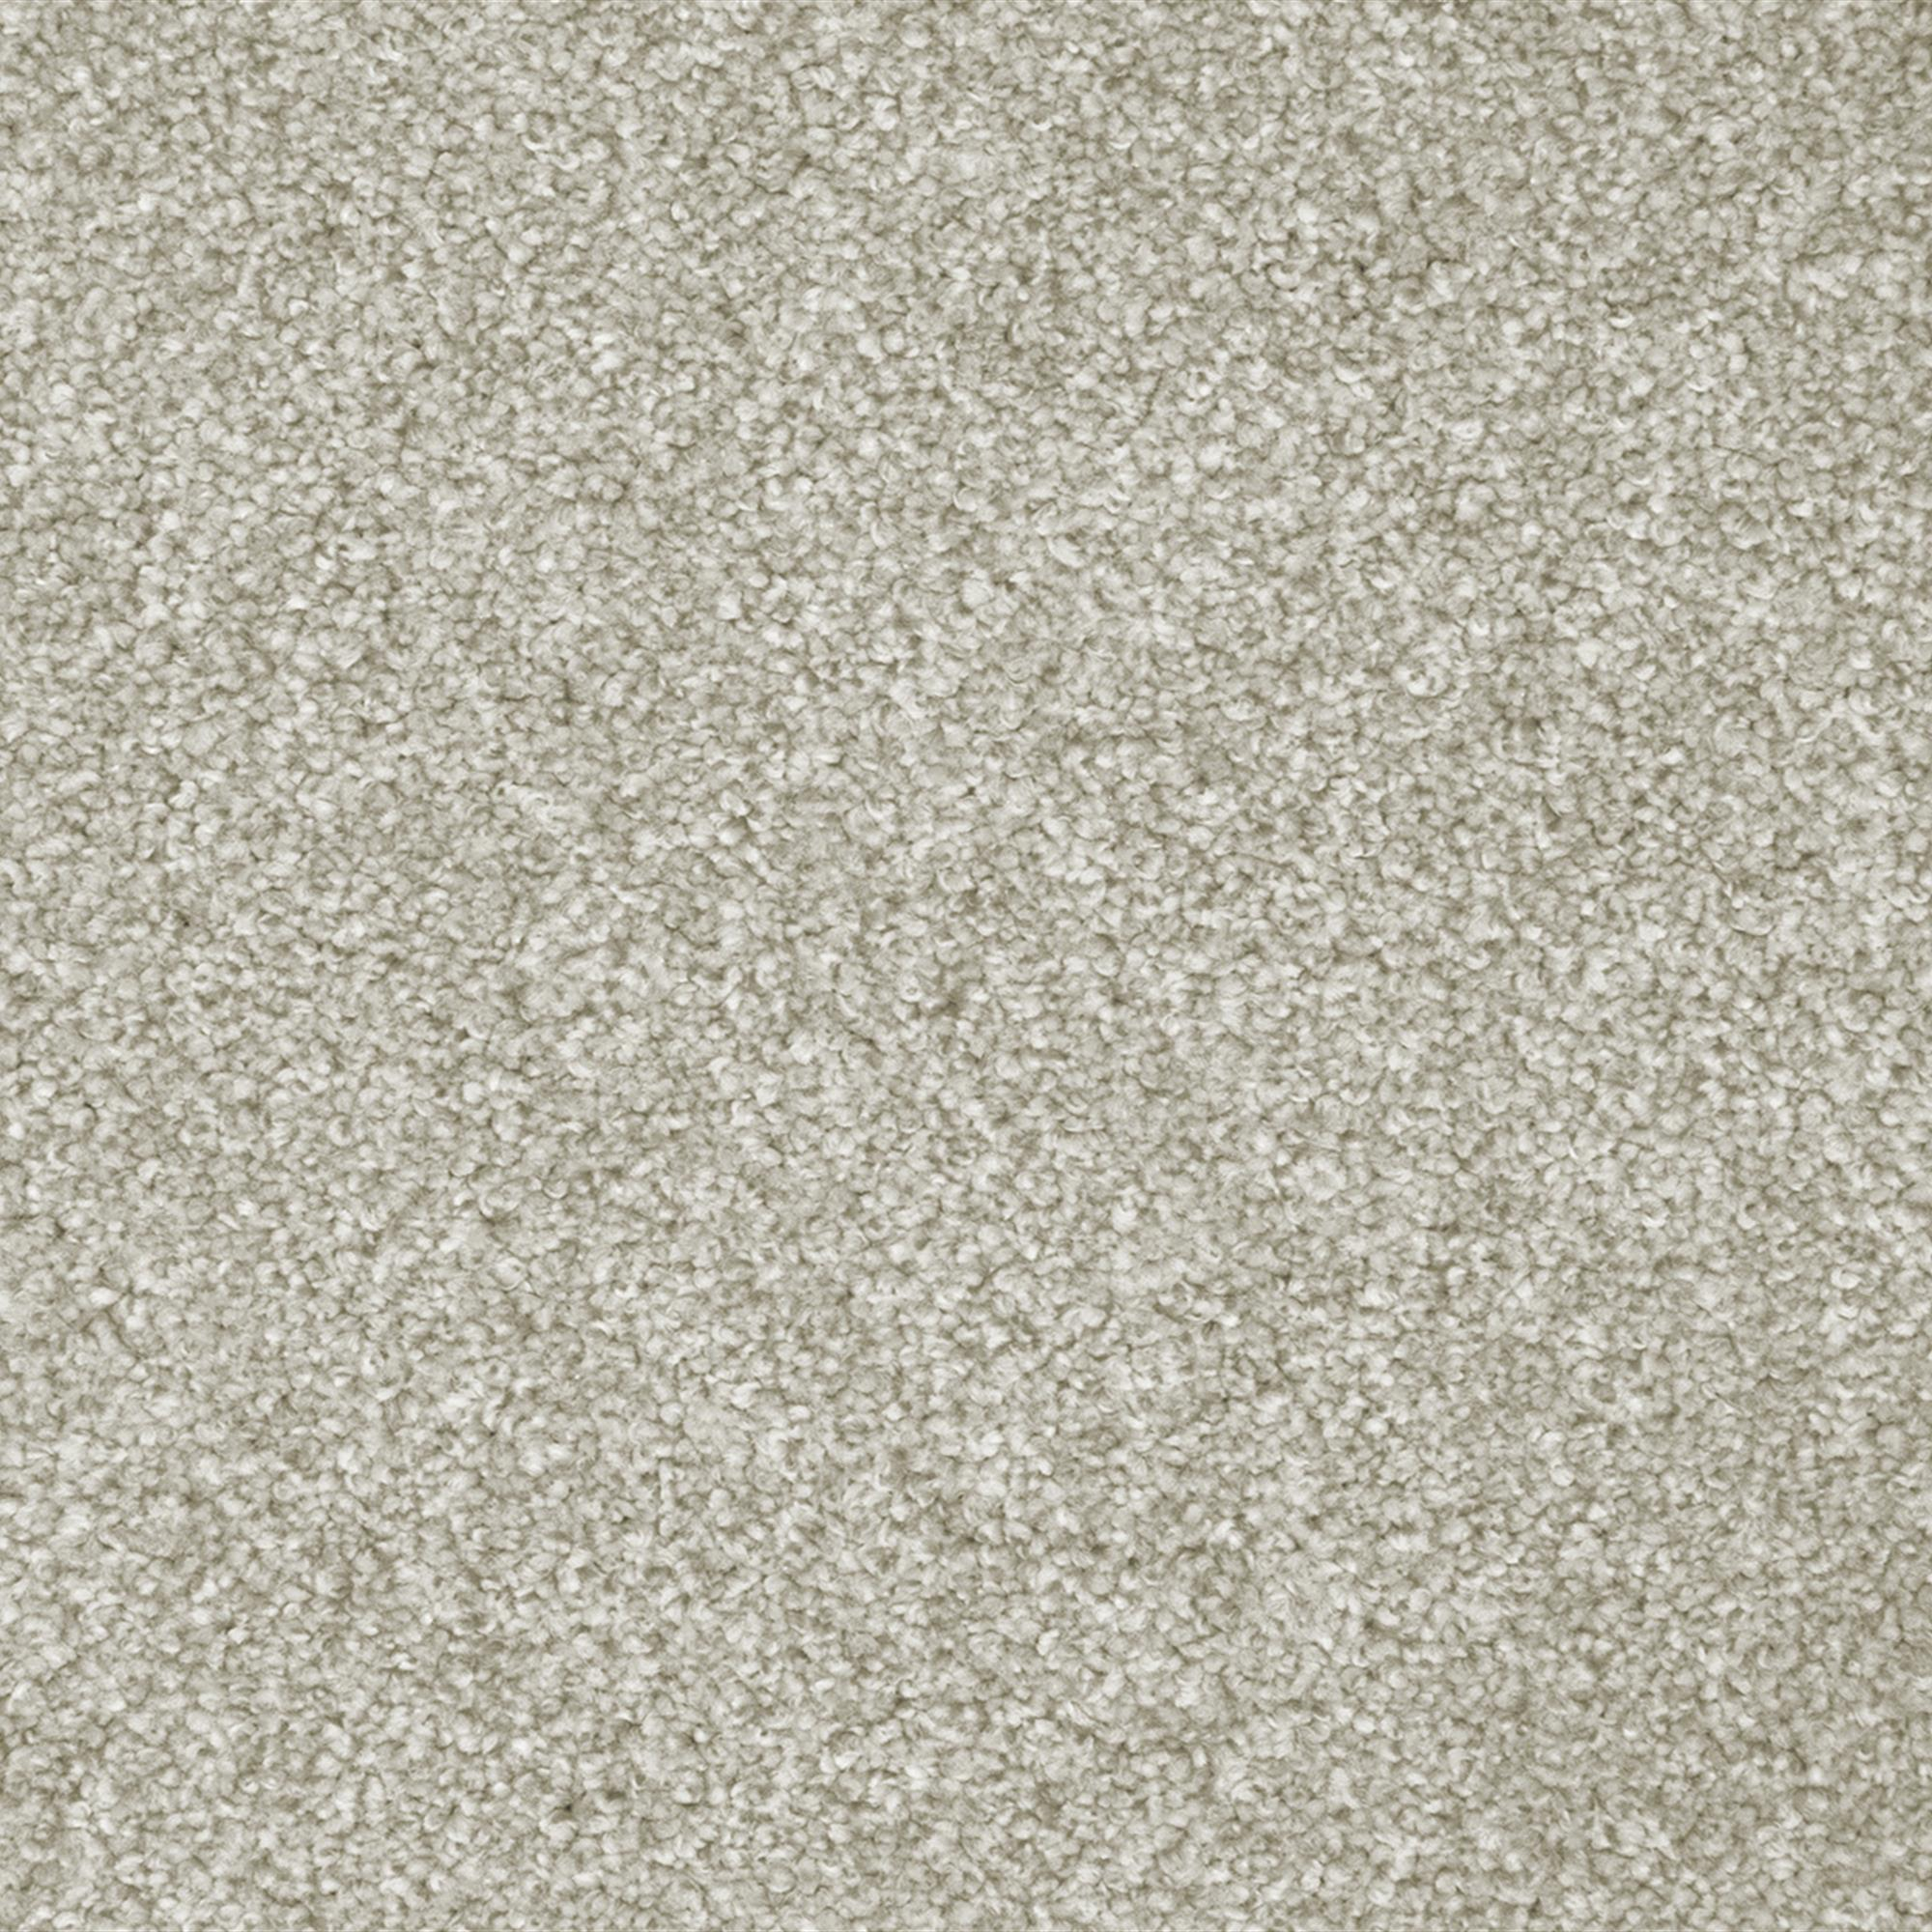 Vivendi Equinox Carpet, 32 String, swatch